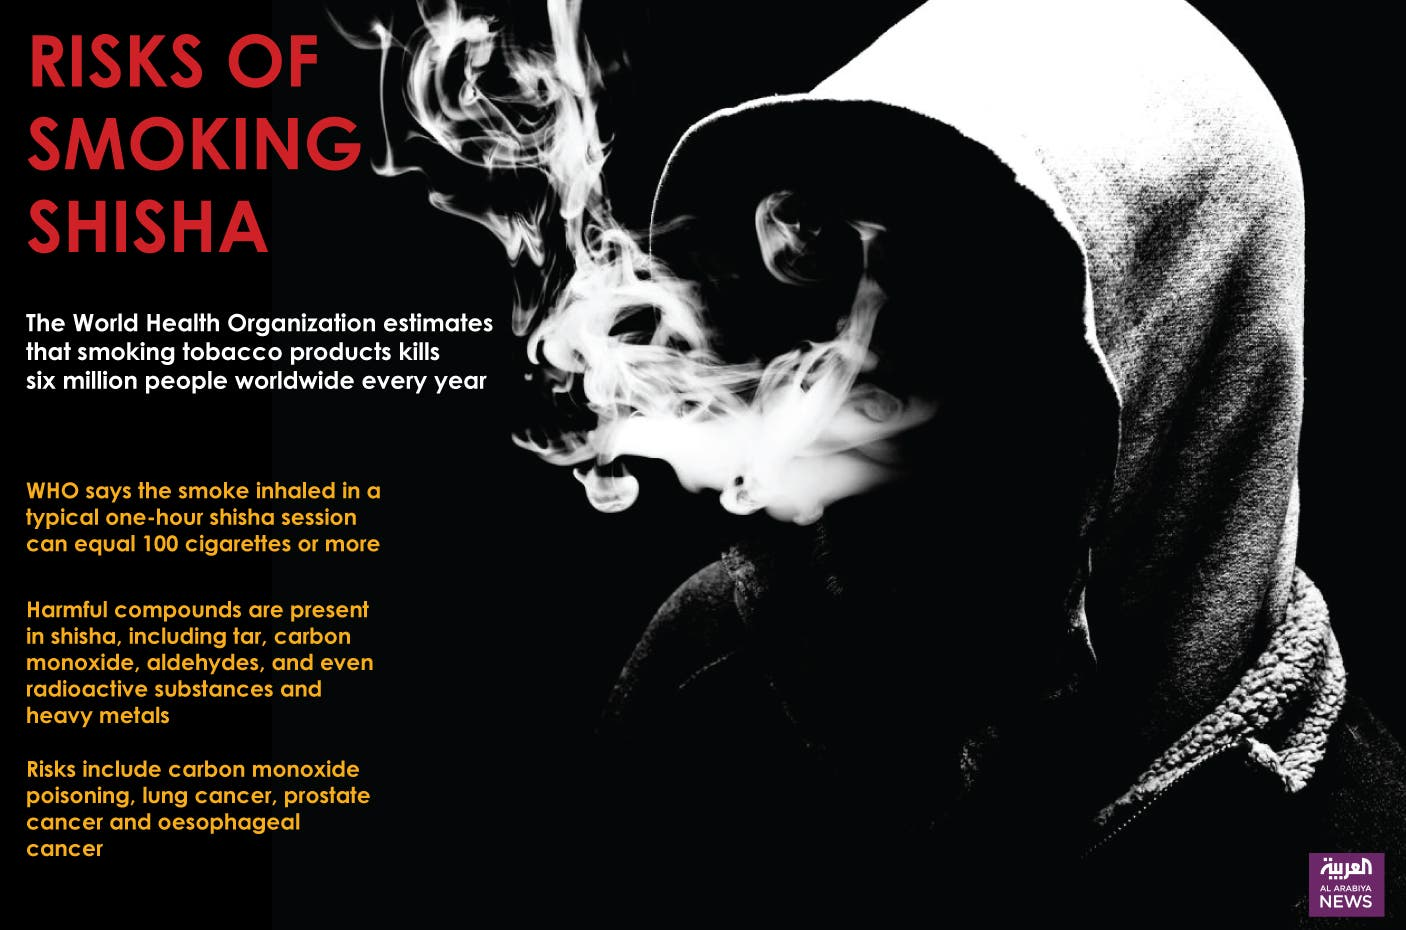 Infographic: Risks of smoking shisha